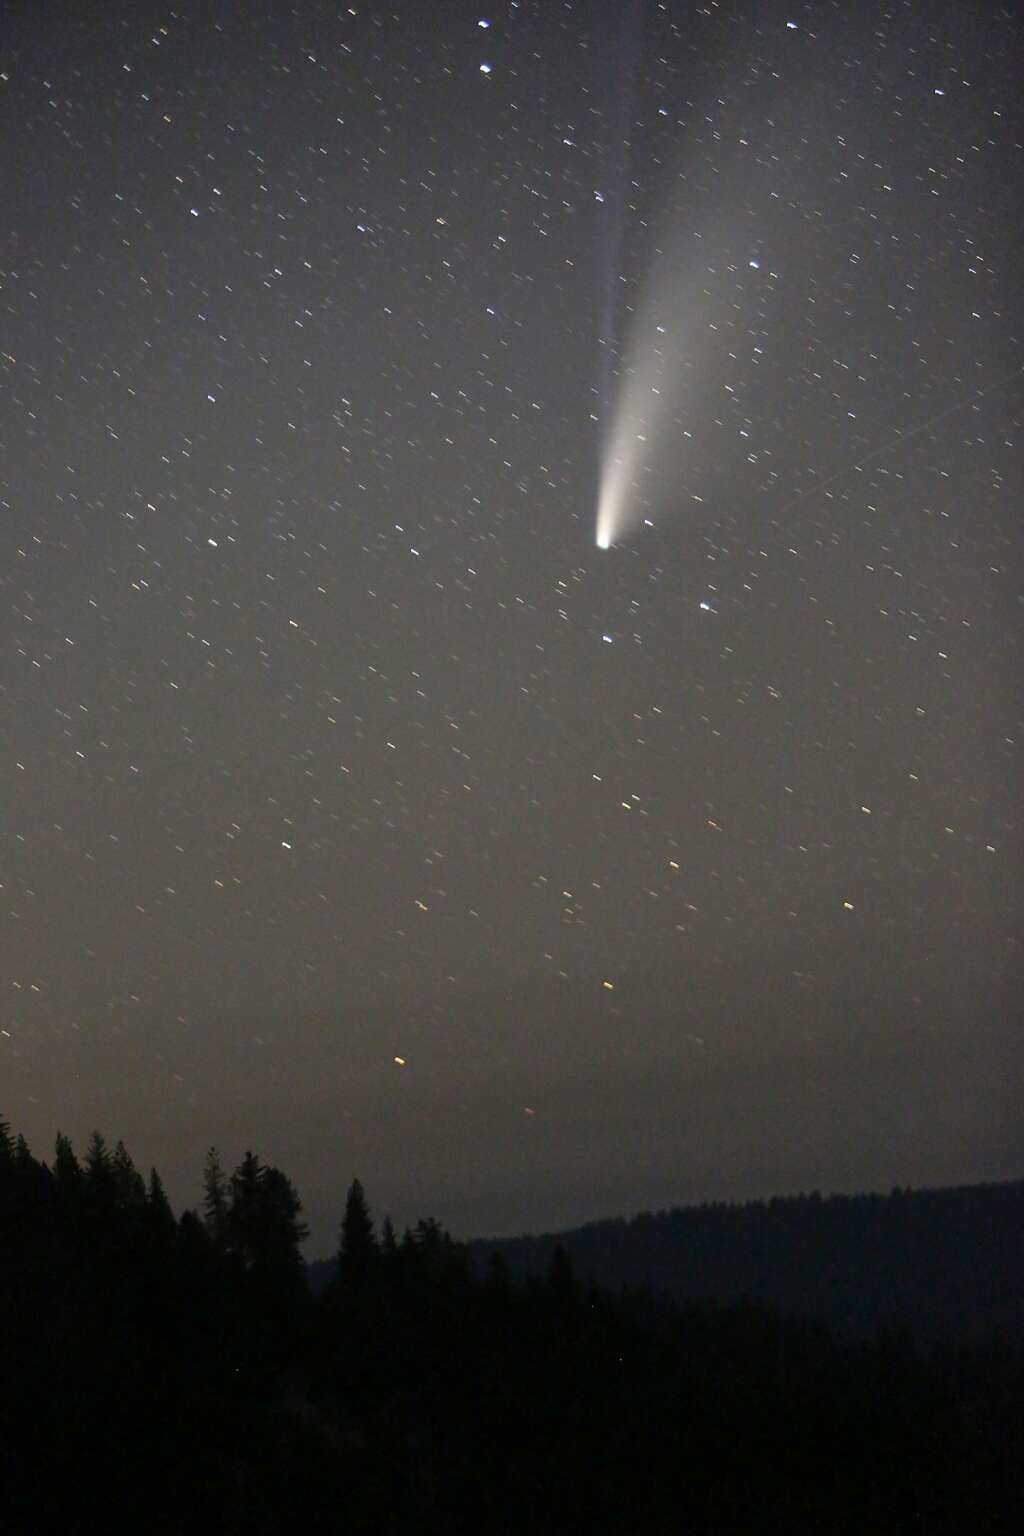 Comet Neowise leaves its cosmic tails of dust and ionized gasses in the night sky as it makes its 6,766 year orbit of the sun as viewed from the Jefferson Creek Scenic Overlook off of Highway 20 July 19. The comet was be closest to Earth on July 23 at 64 million miles away. | Photo: Elias Funez